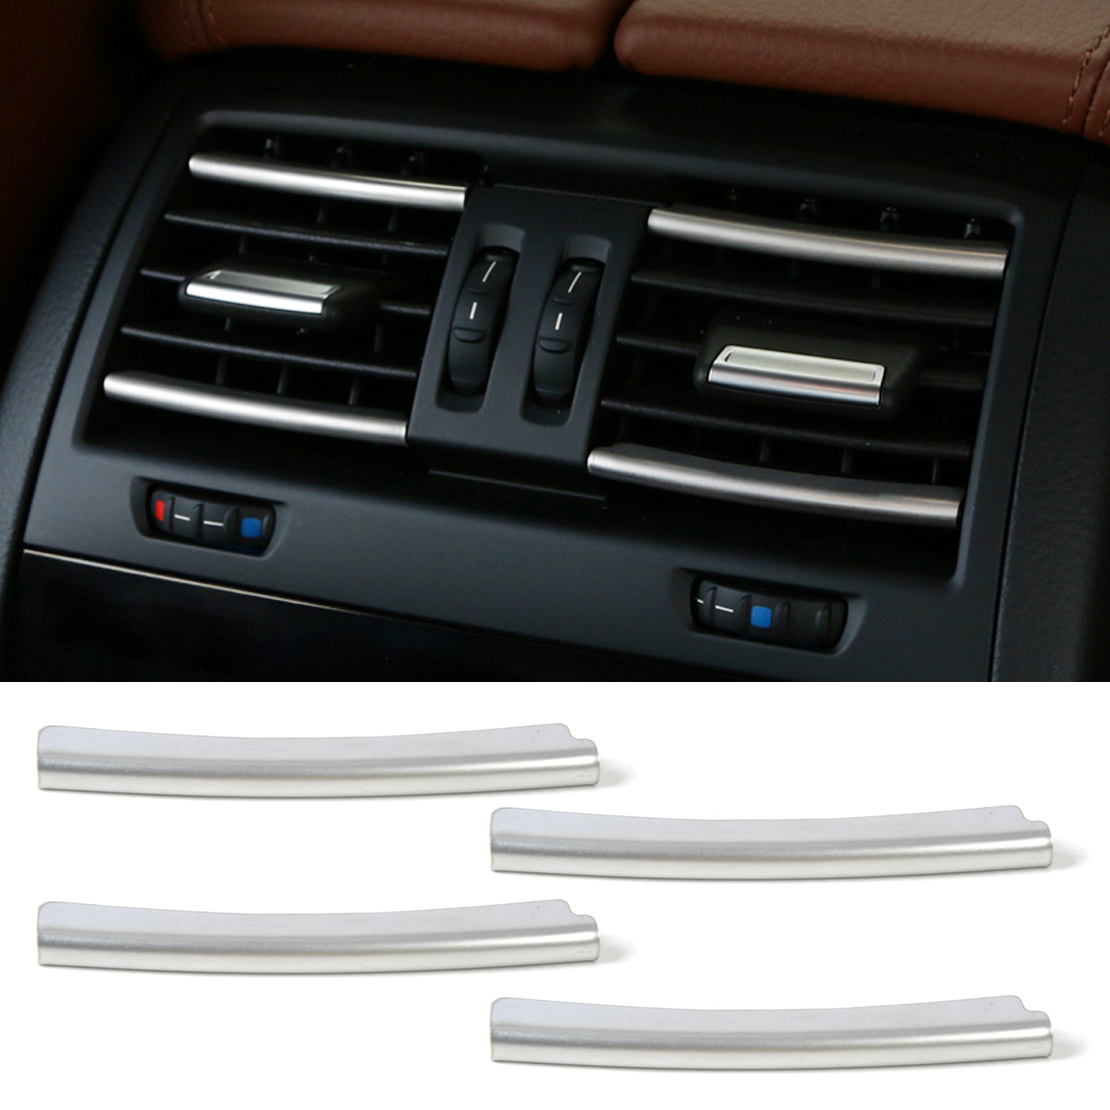 DWCX car-styling Rear Air Condition Vent Outlet Grille Cover Trim Strip For BMW 5 Series F10 F18 2011 2012 2013 2014 2015 2016